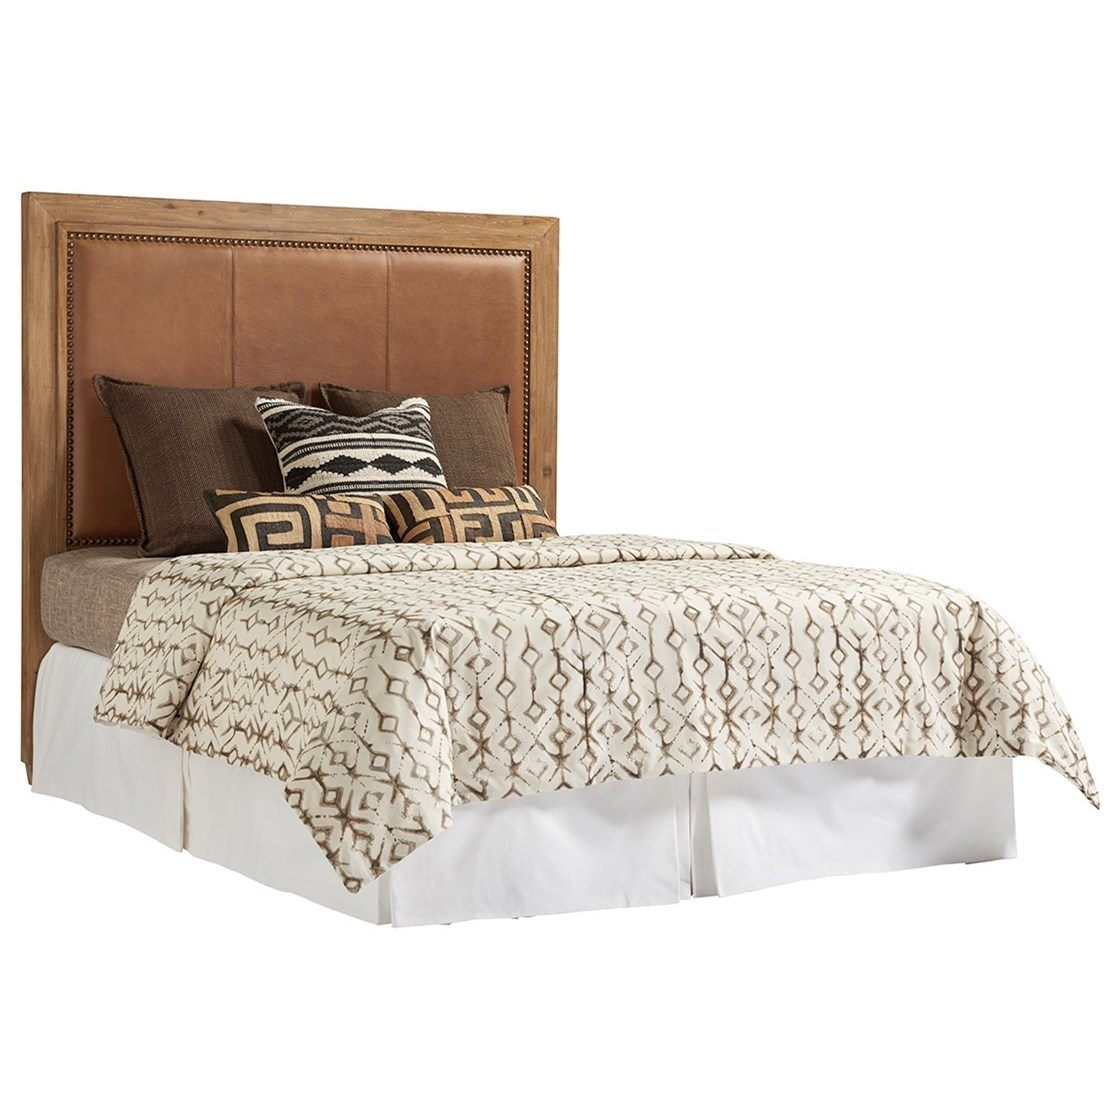 Los Altos Antilles Upholstered Panel Headboard 5/0 Que by Tommy Bahama Home at Baer's Furniture